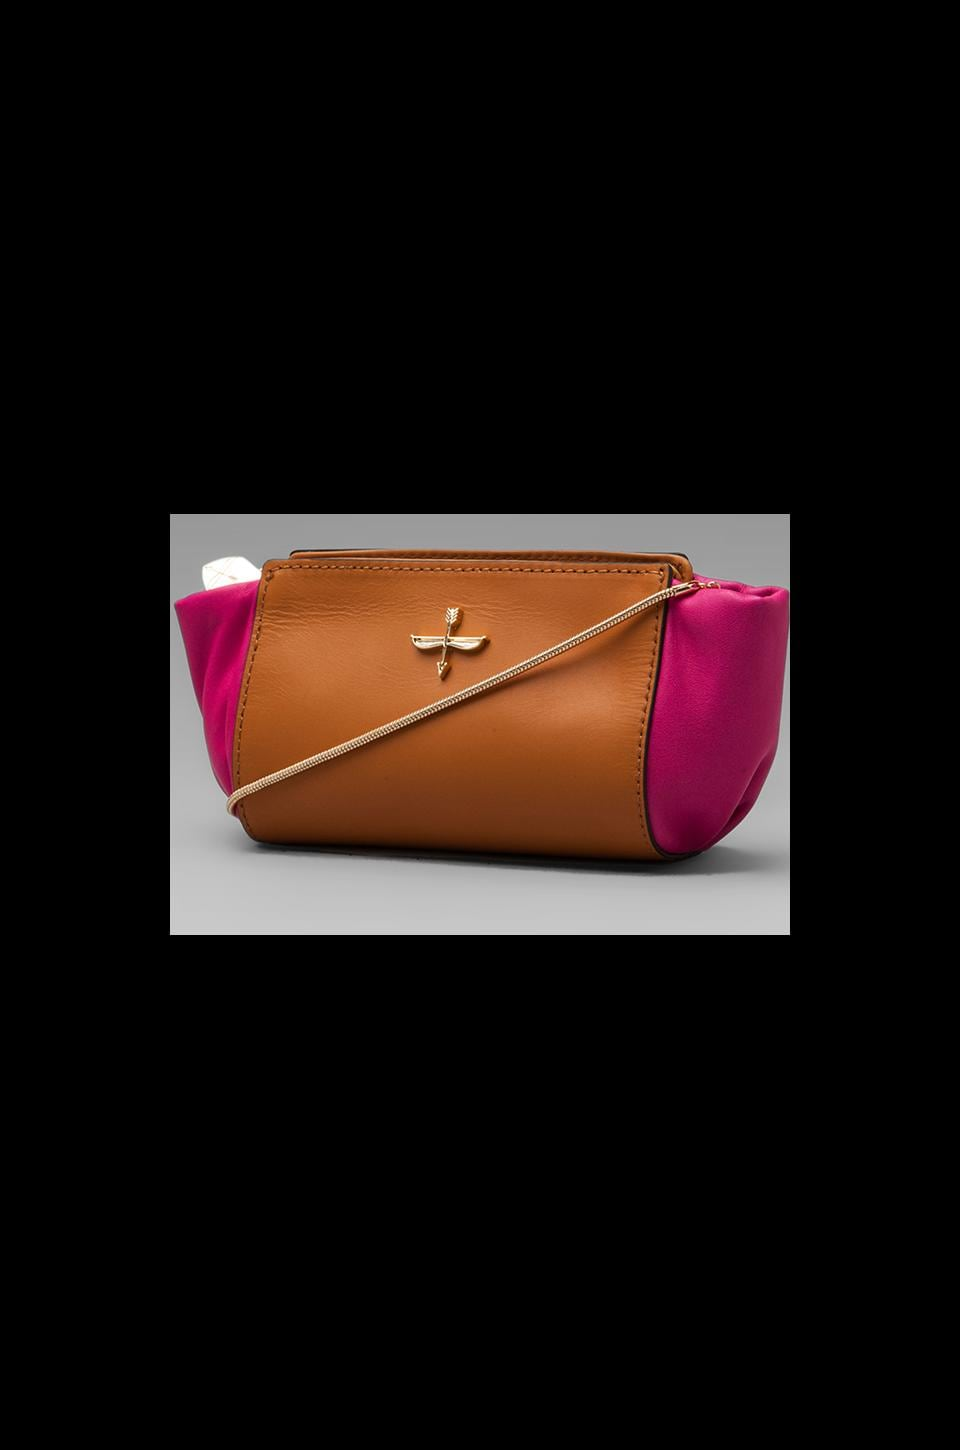 Pour La Victoire Elie Mini Cross Body in Fuchsia